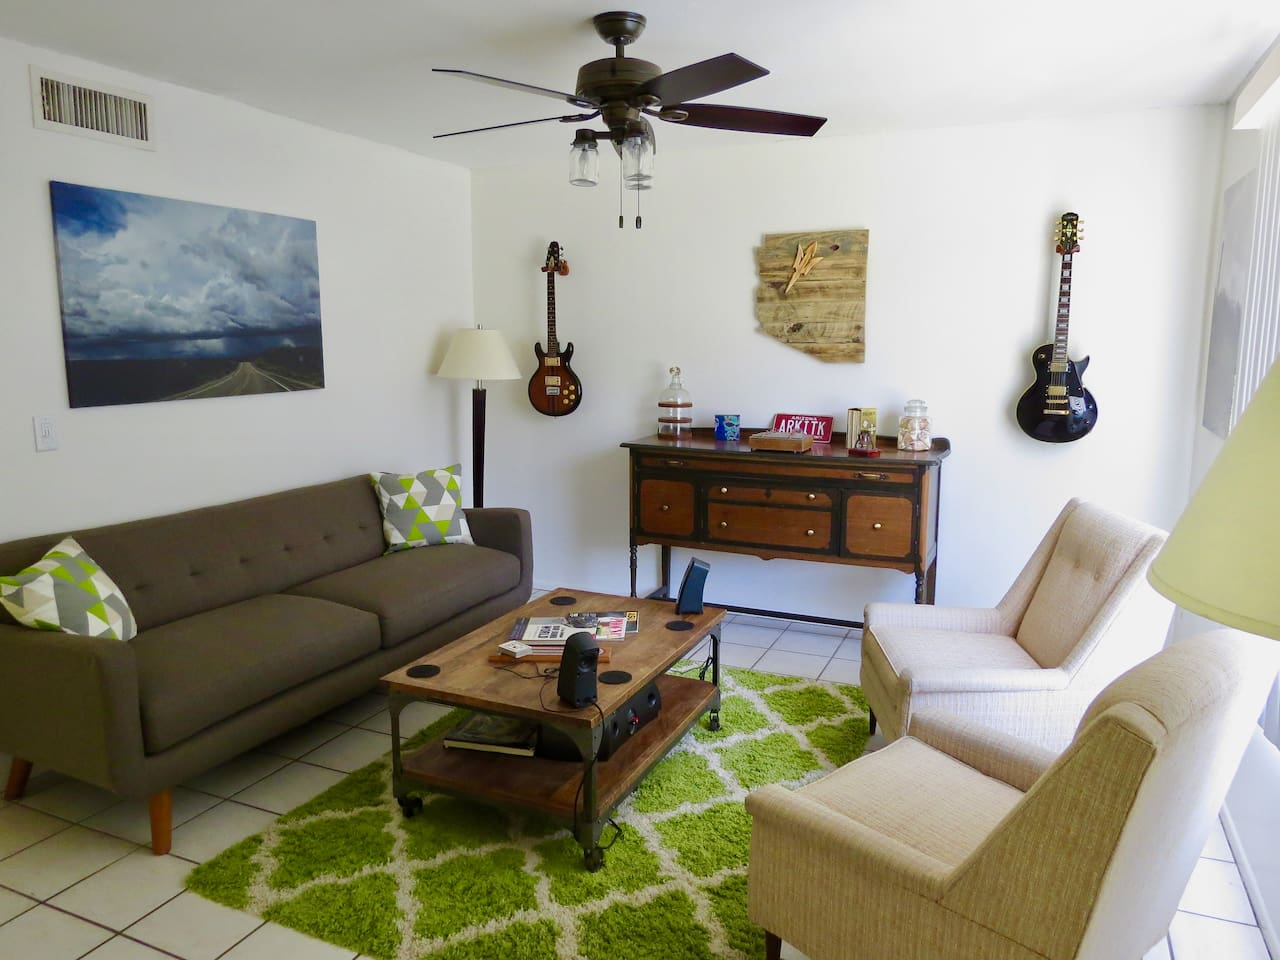 Photo 1:  Mid-century modern living room.  Comfortable?  Yes.